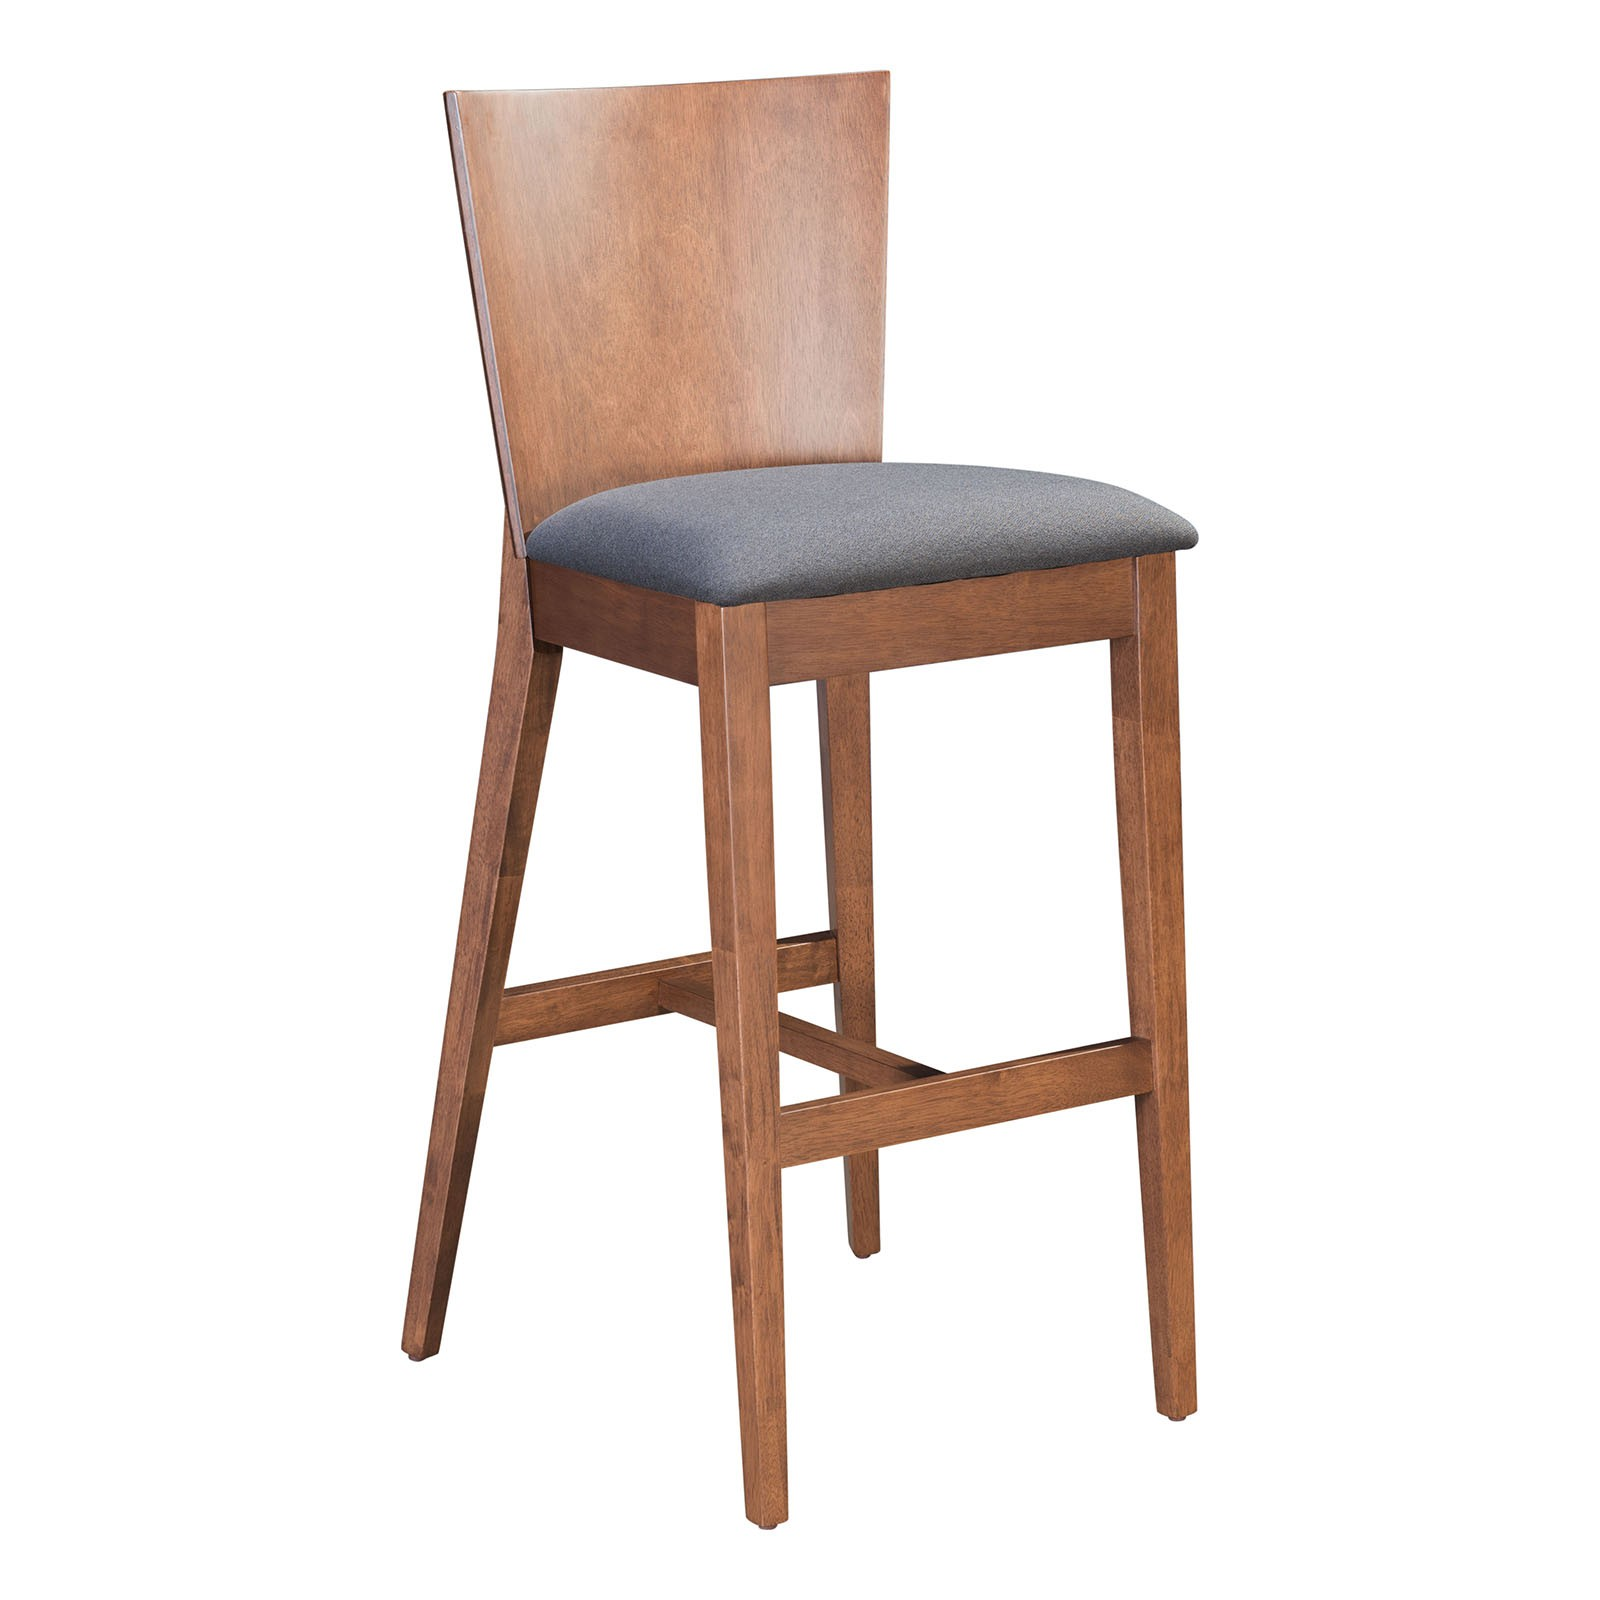 Ambrose Bar Chair Set of 2